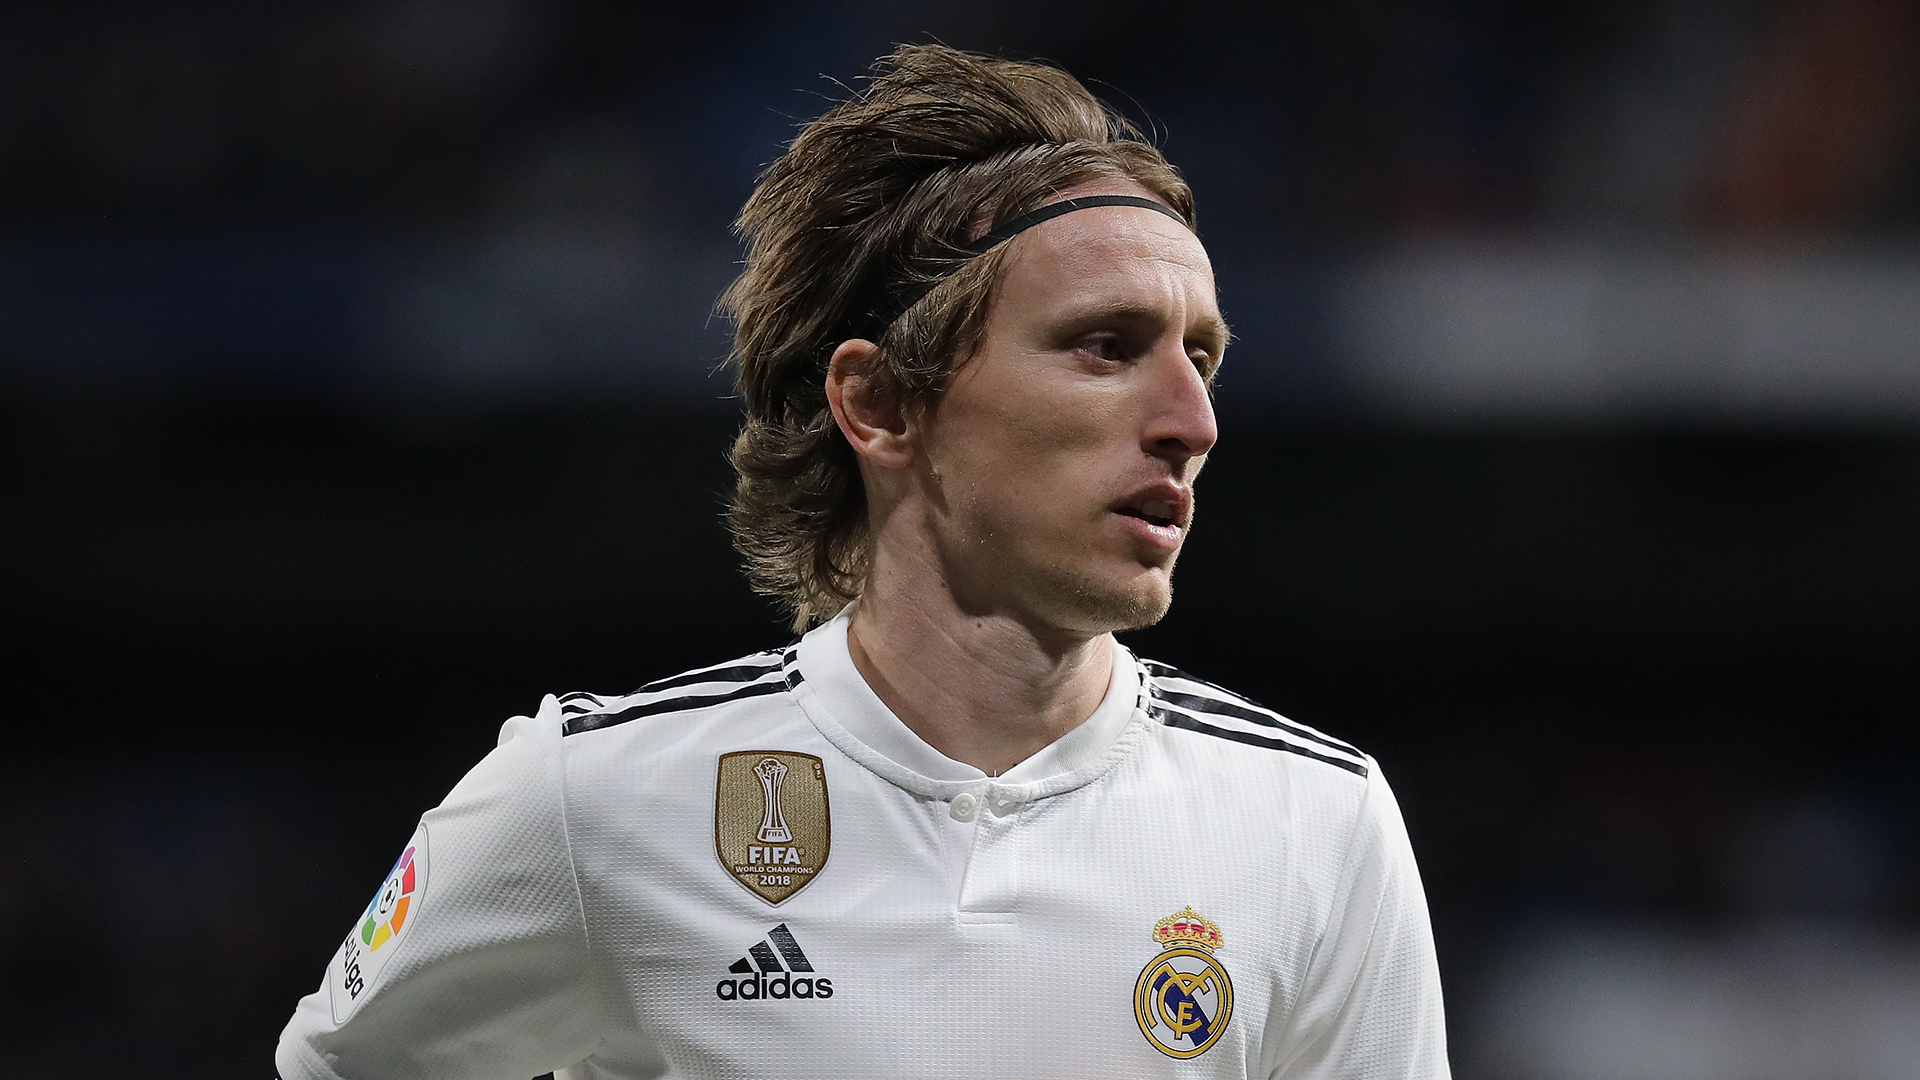 Luka Modric Real Madrid 2019